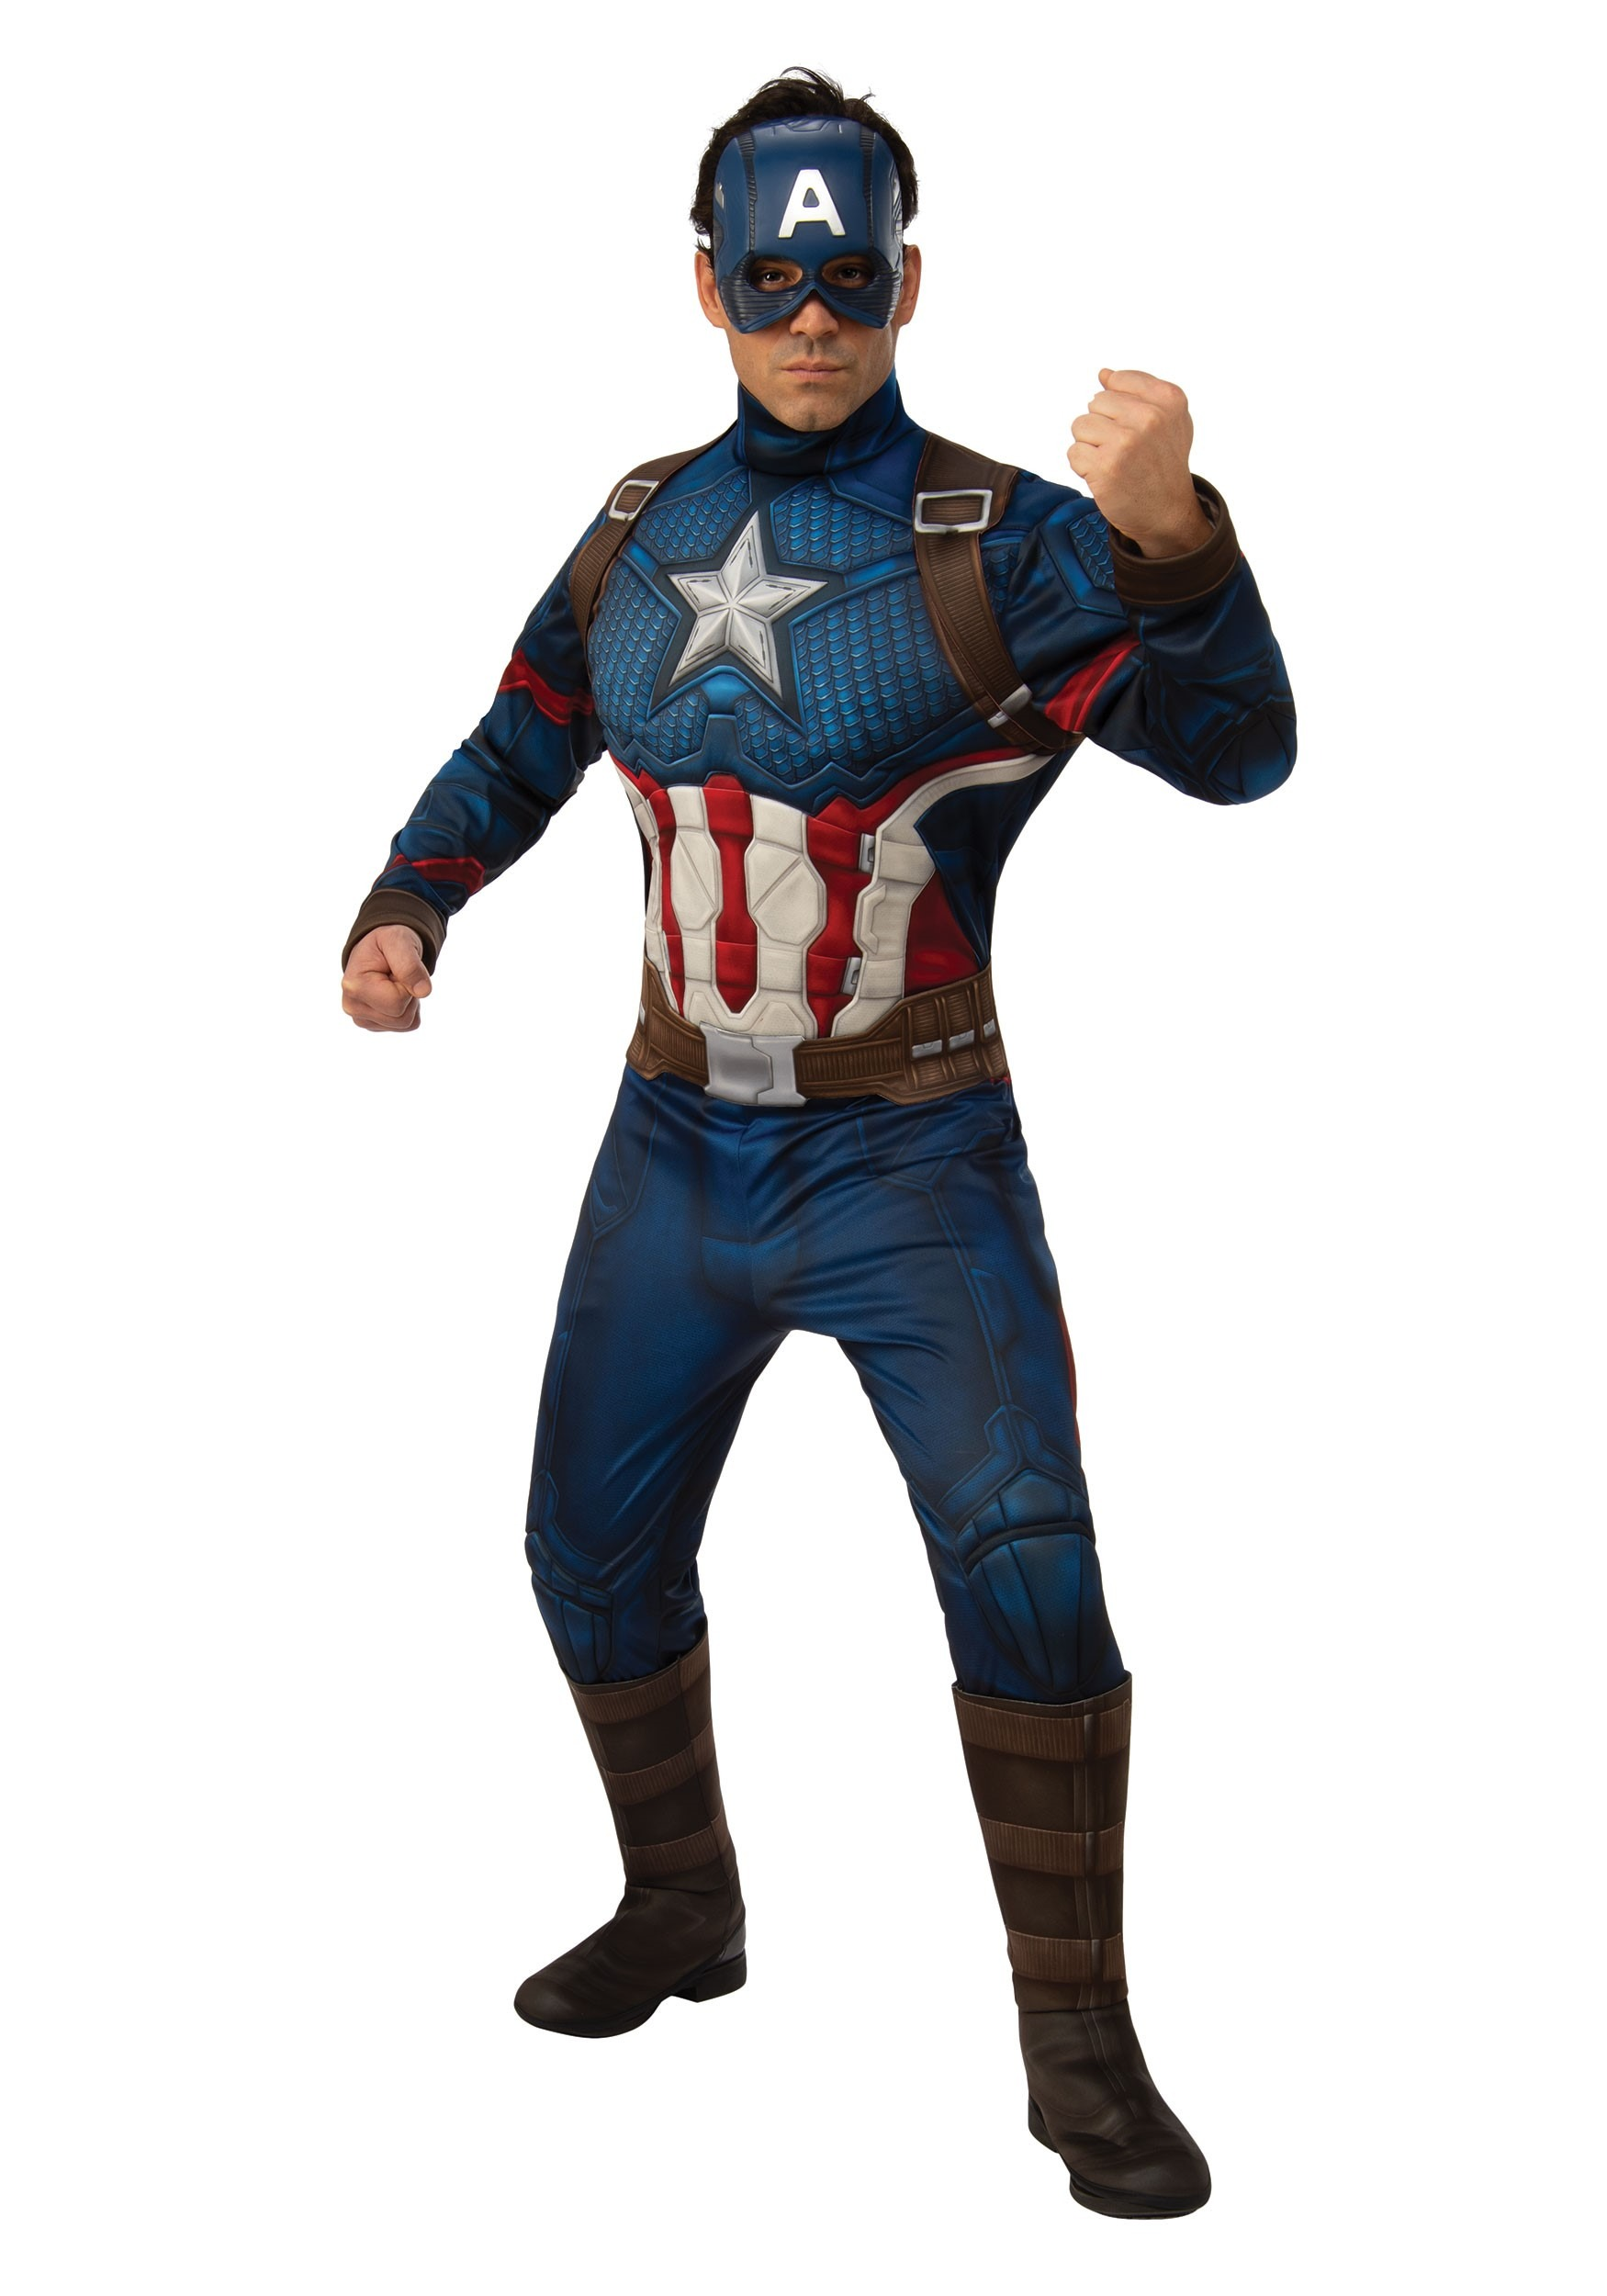 Avengers Endgame Deluxe Captain America Costume For Men